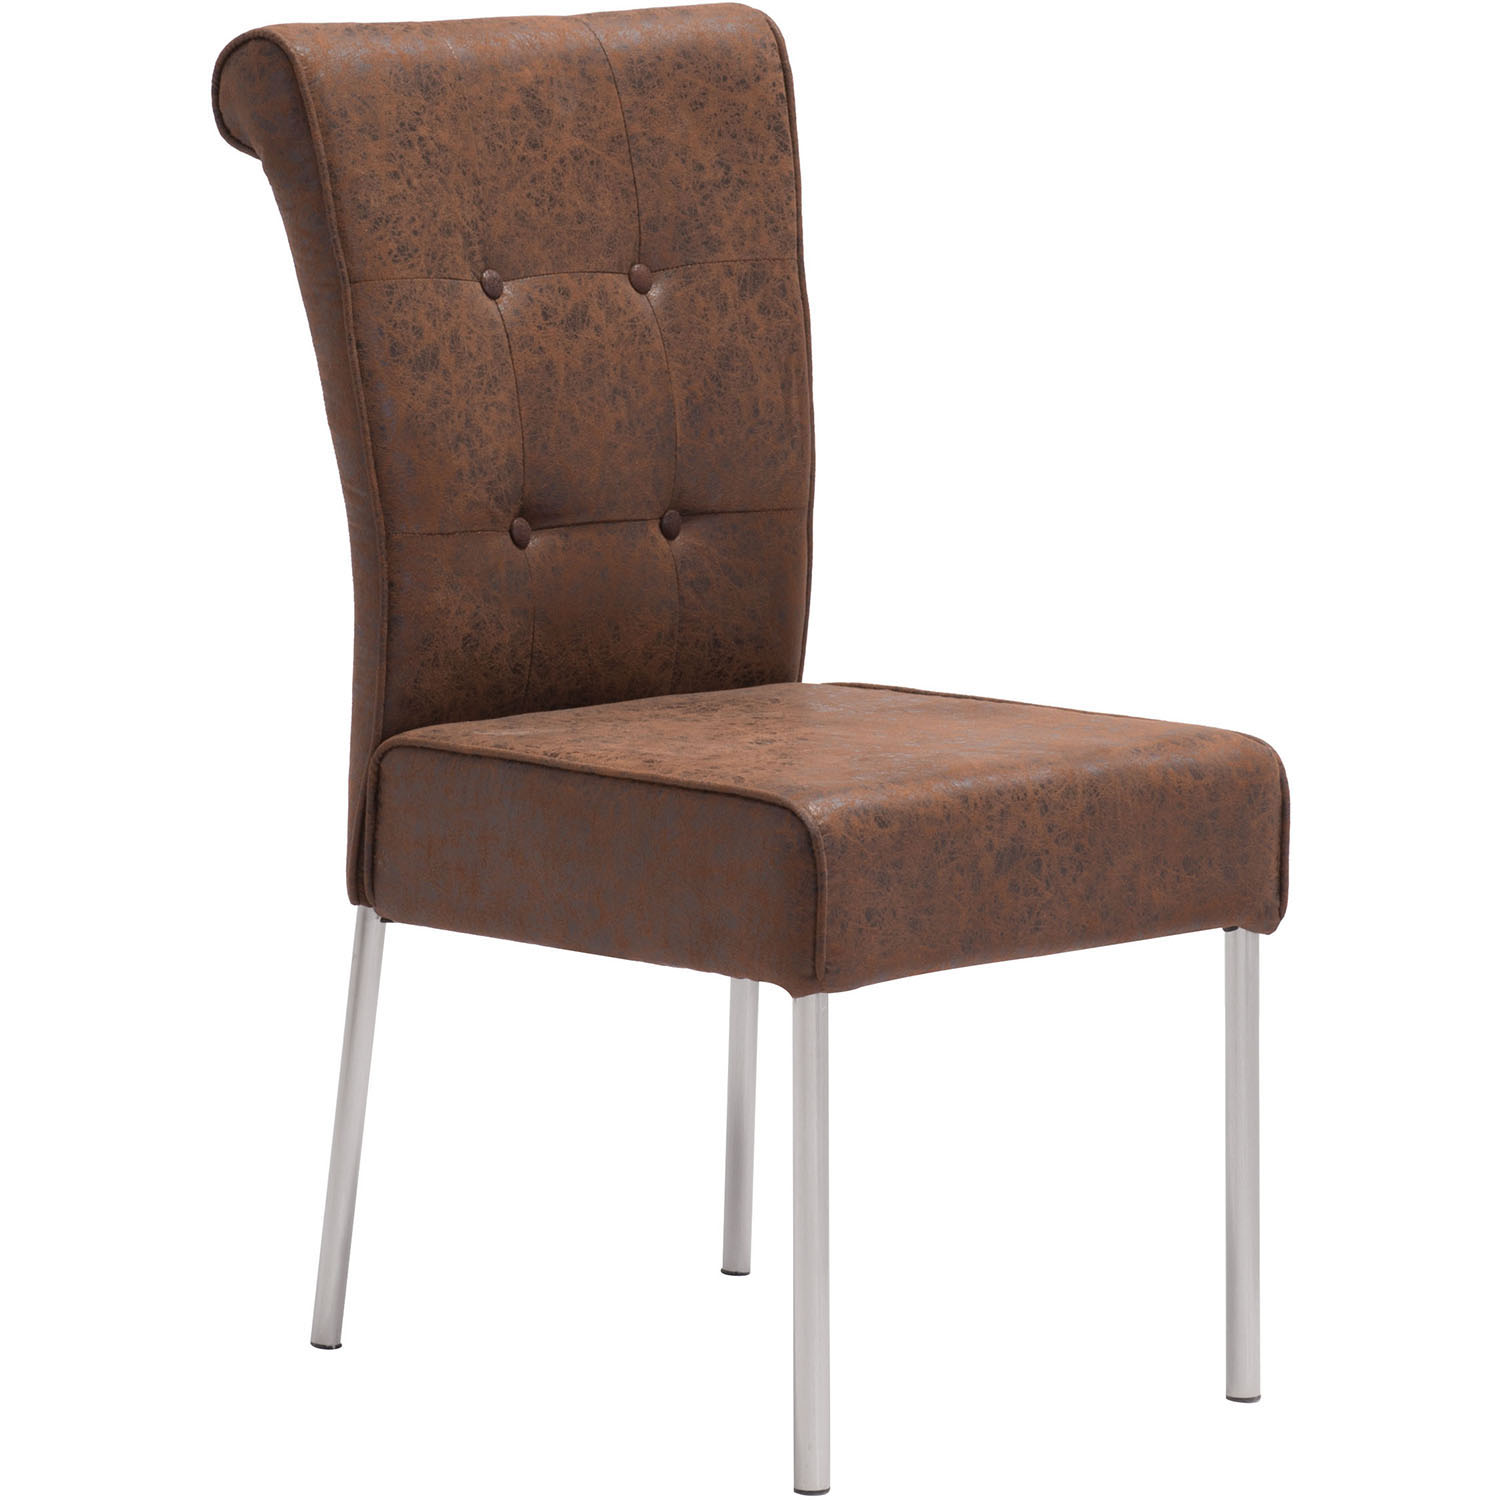 Splendid Modern Ringo Dining Chairs  Product Photo